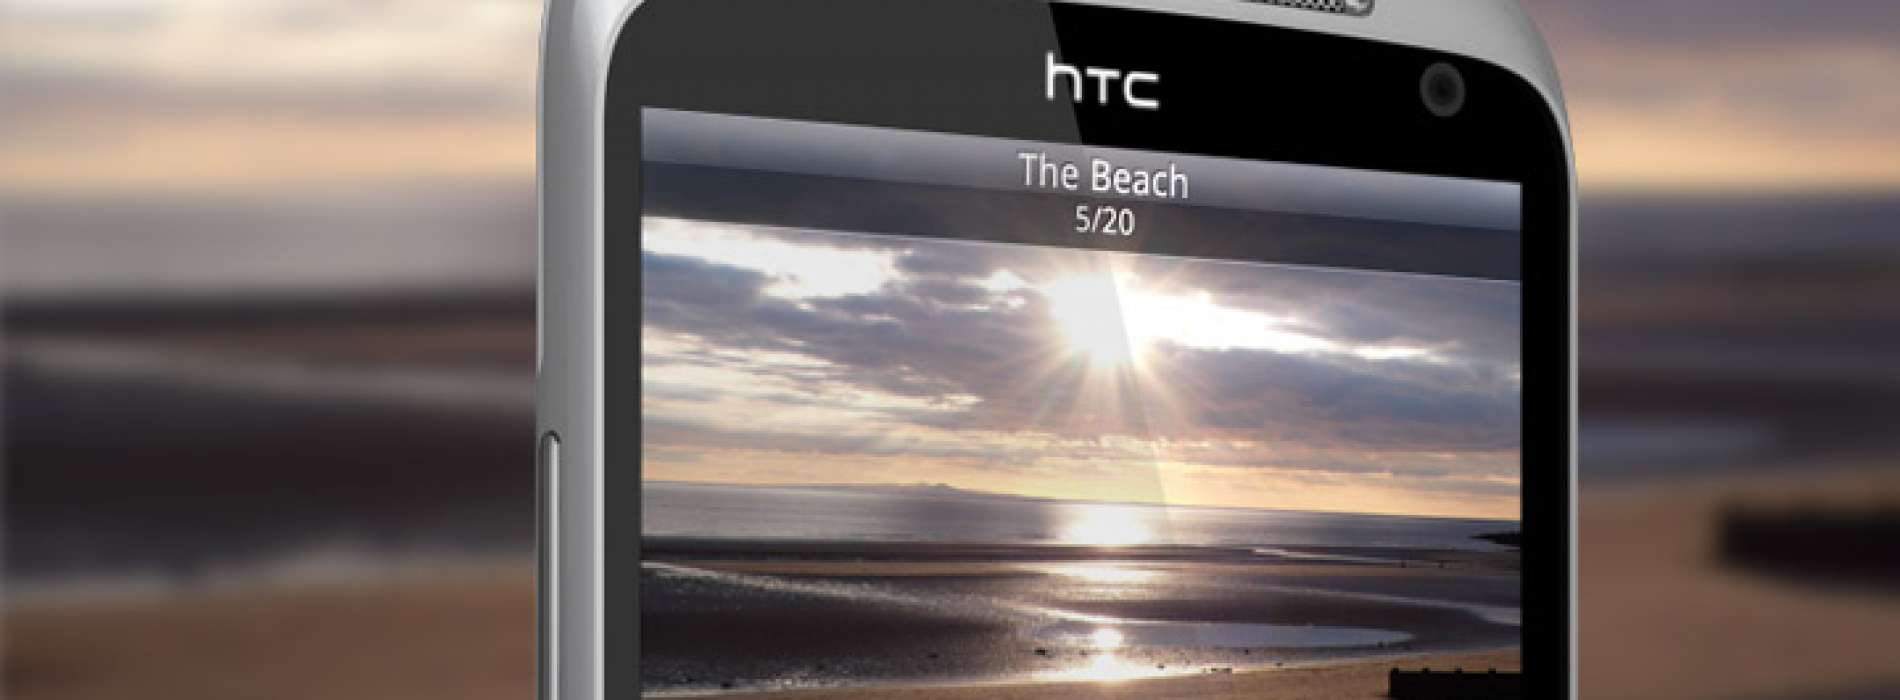 HTC Q3 revenue tumbles by nearly half year-over-year